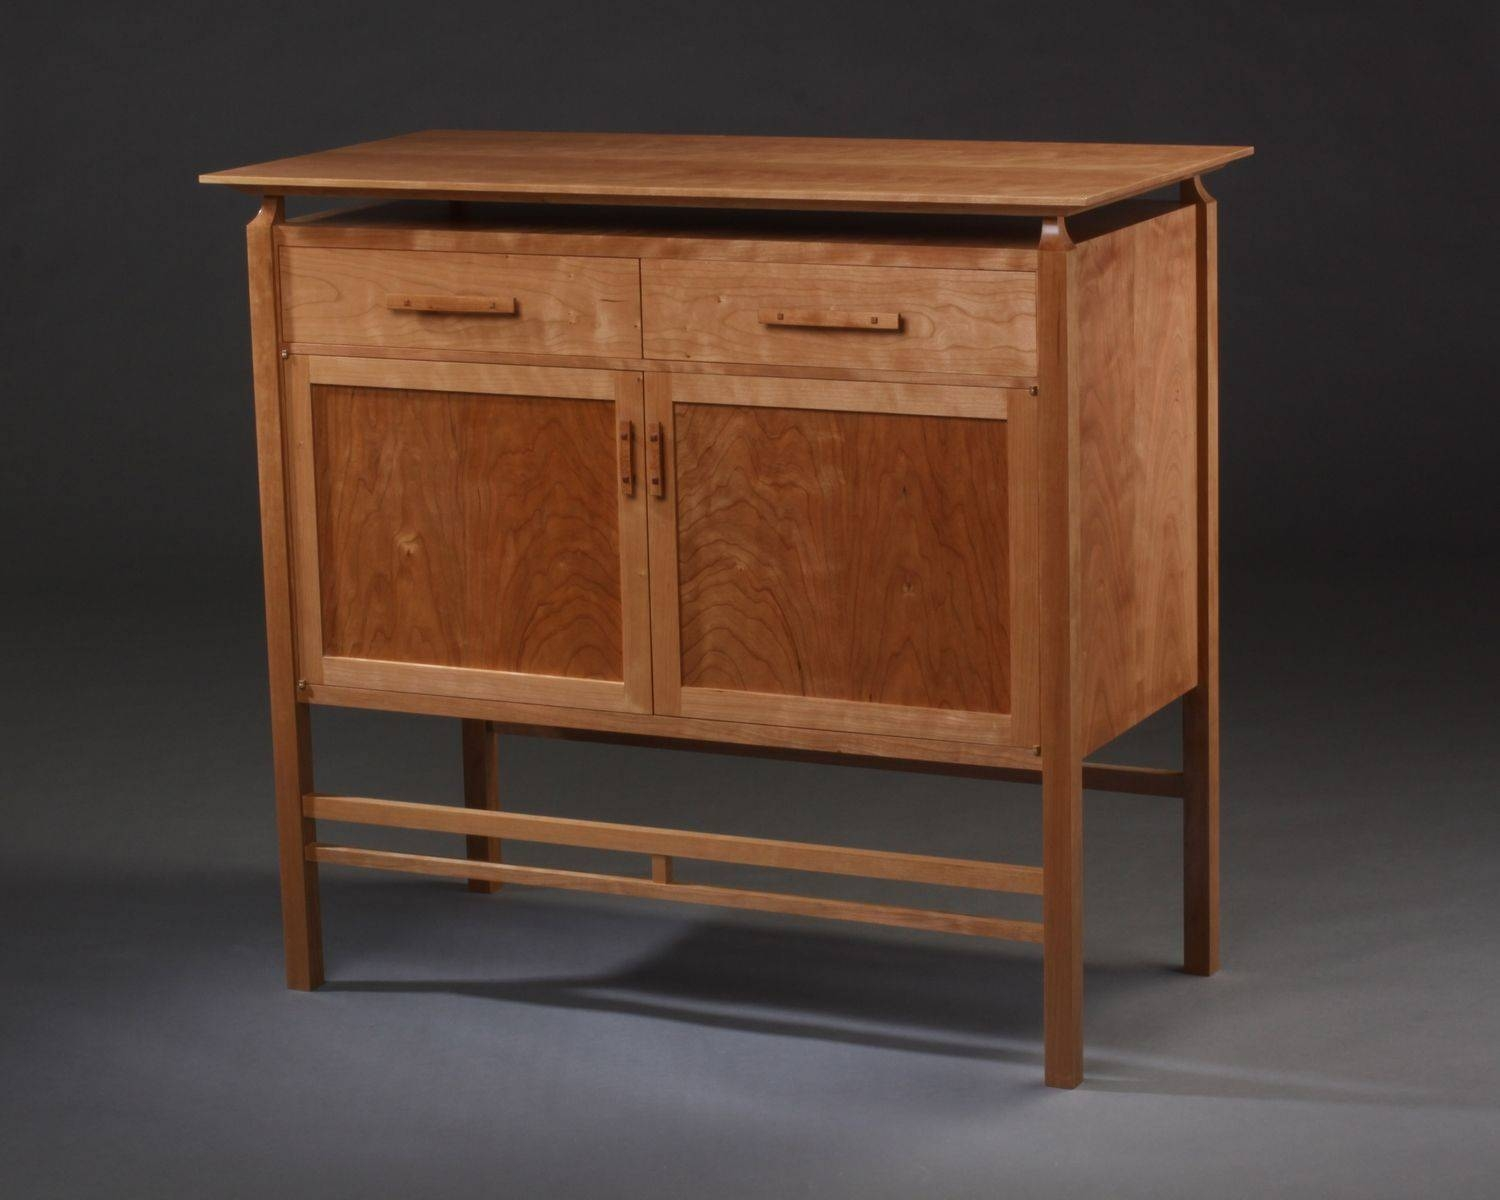 Buy A Custom Modern Mission Cherry Cabinet With Floating Top, Made In Mission Style Sideboards (View 10 of 15)